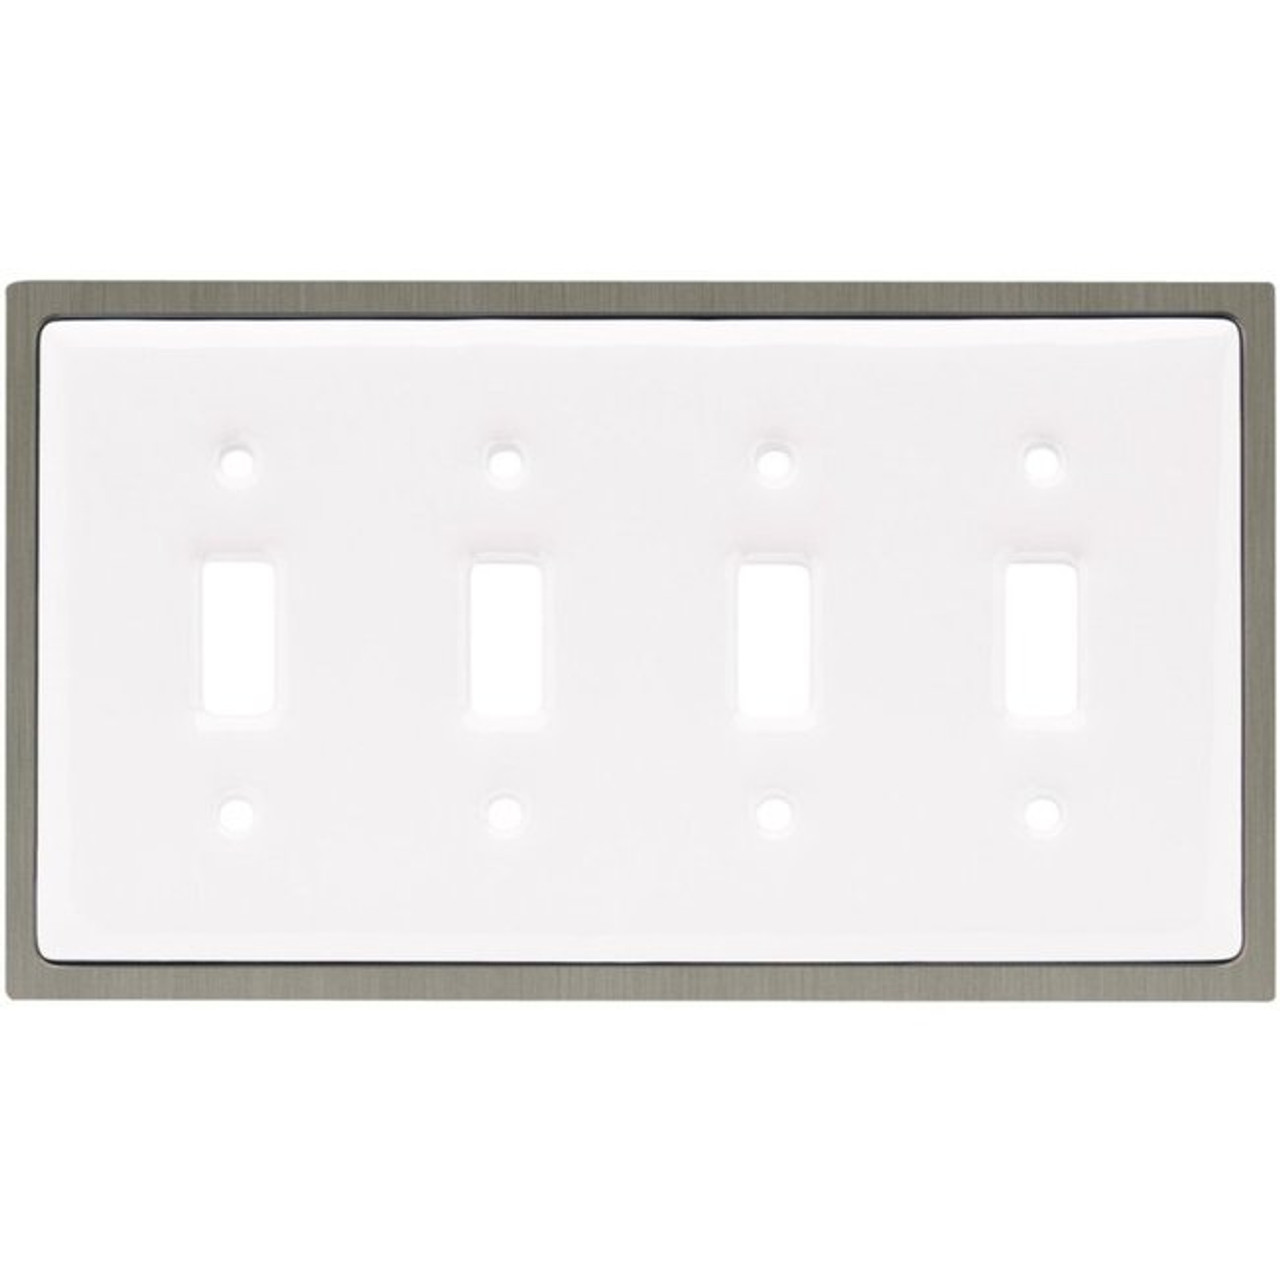 64012 White Ceramic & Satin Nickel Quad Switch Cover Plate